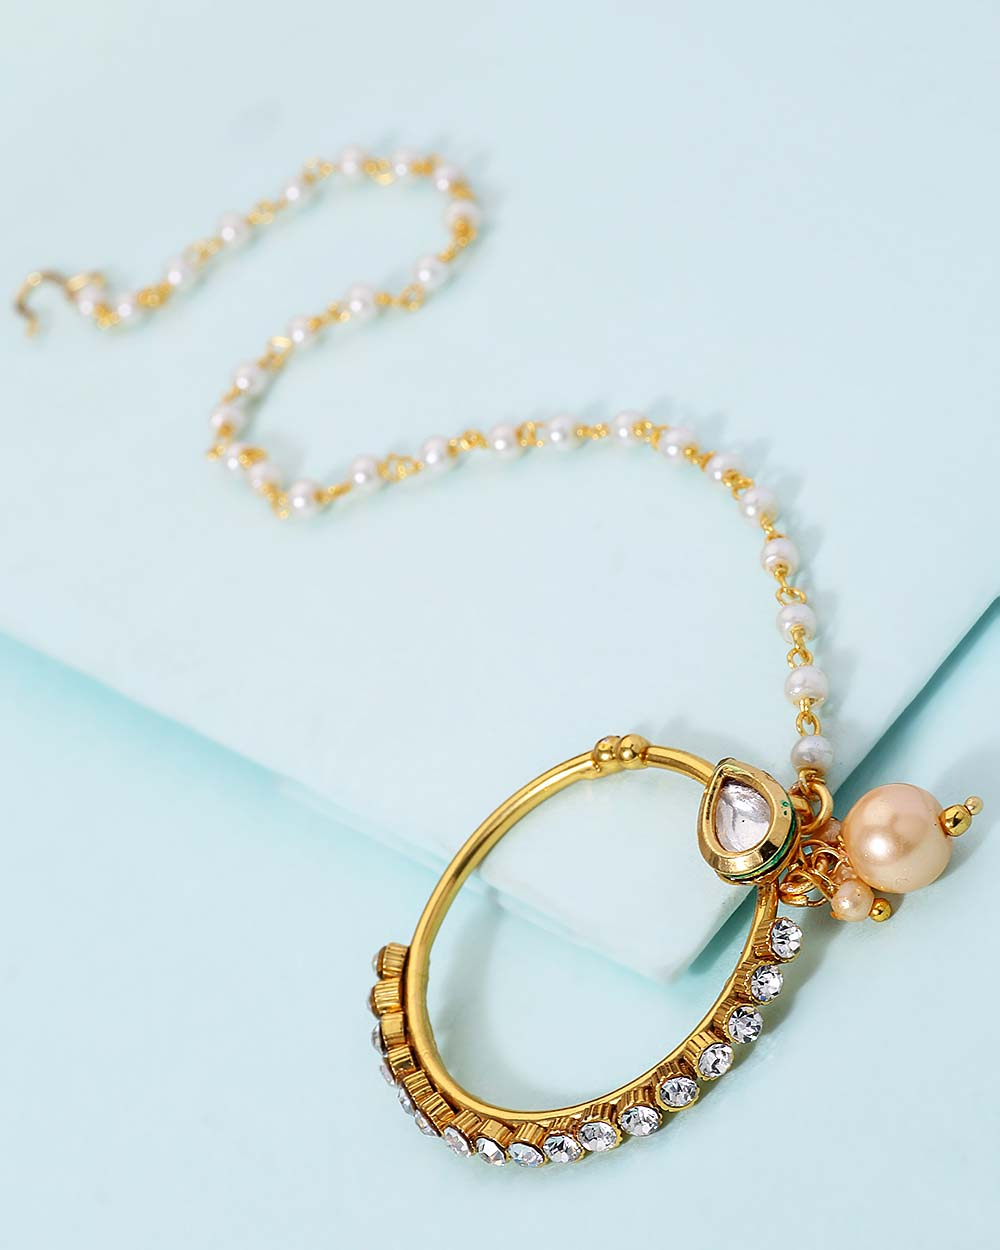 Buy Nose Ring With Pearl Chain For Women Online India | Voylla